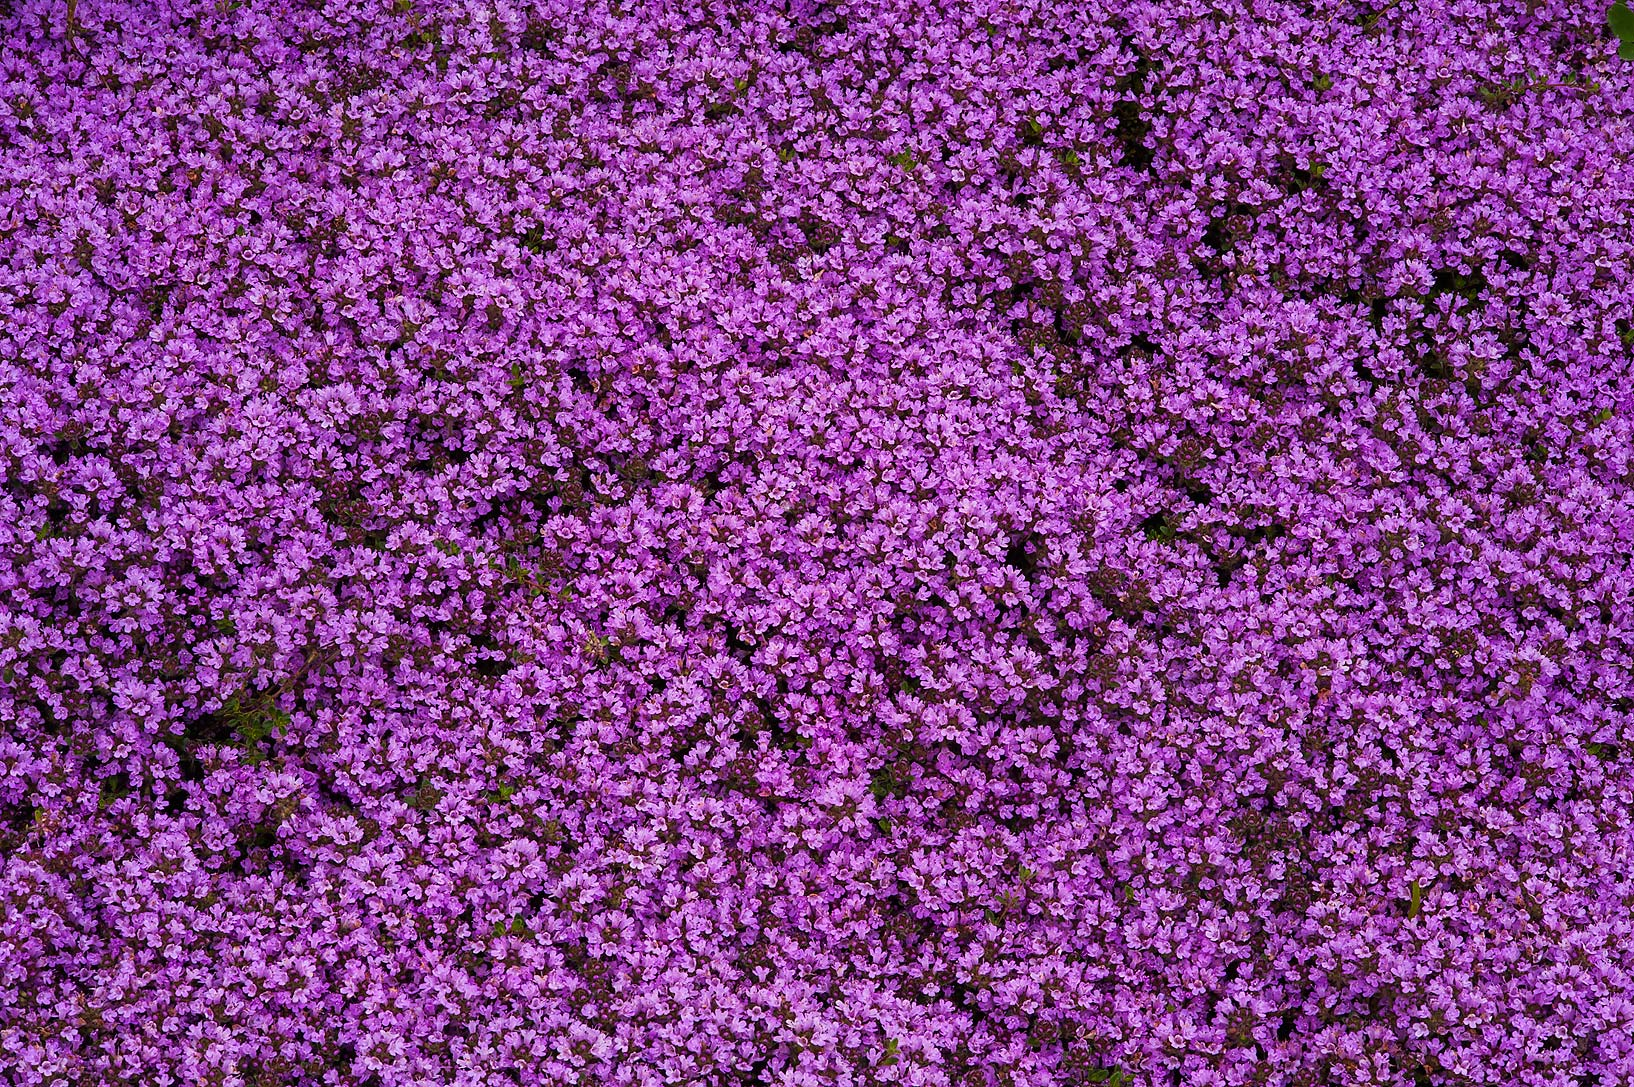 Carpet of pink thyme flowers in Botanic Gardens...Institute. St.Petersburg, Russia